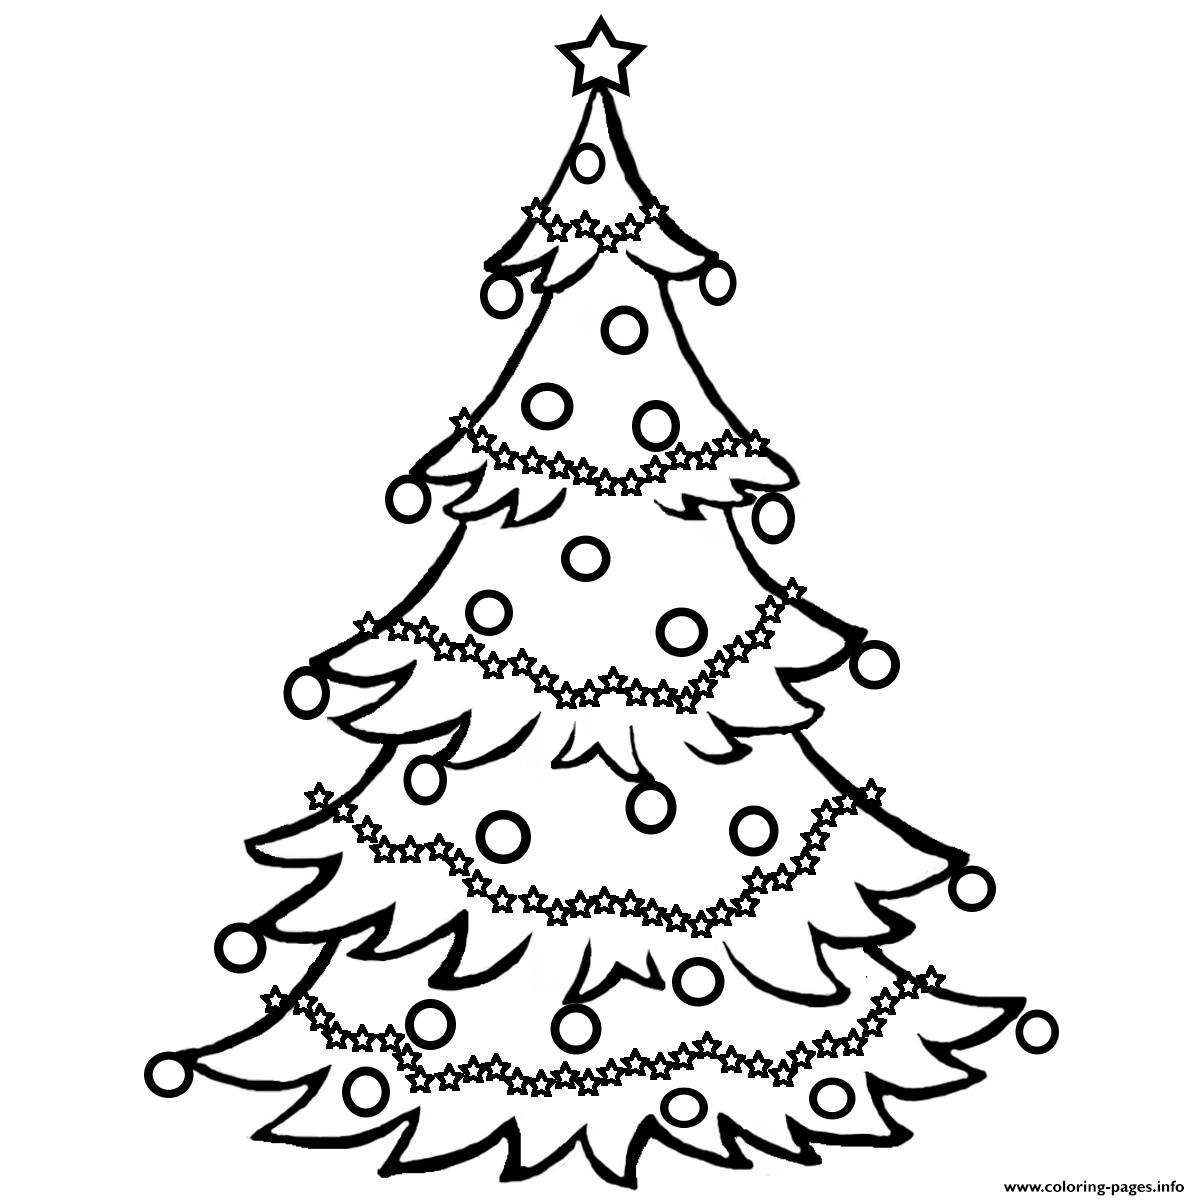 Christmas Tree Free0Ff6 Coloring Pages Printable - Free Printable Christmas Tree Images